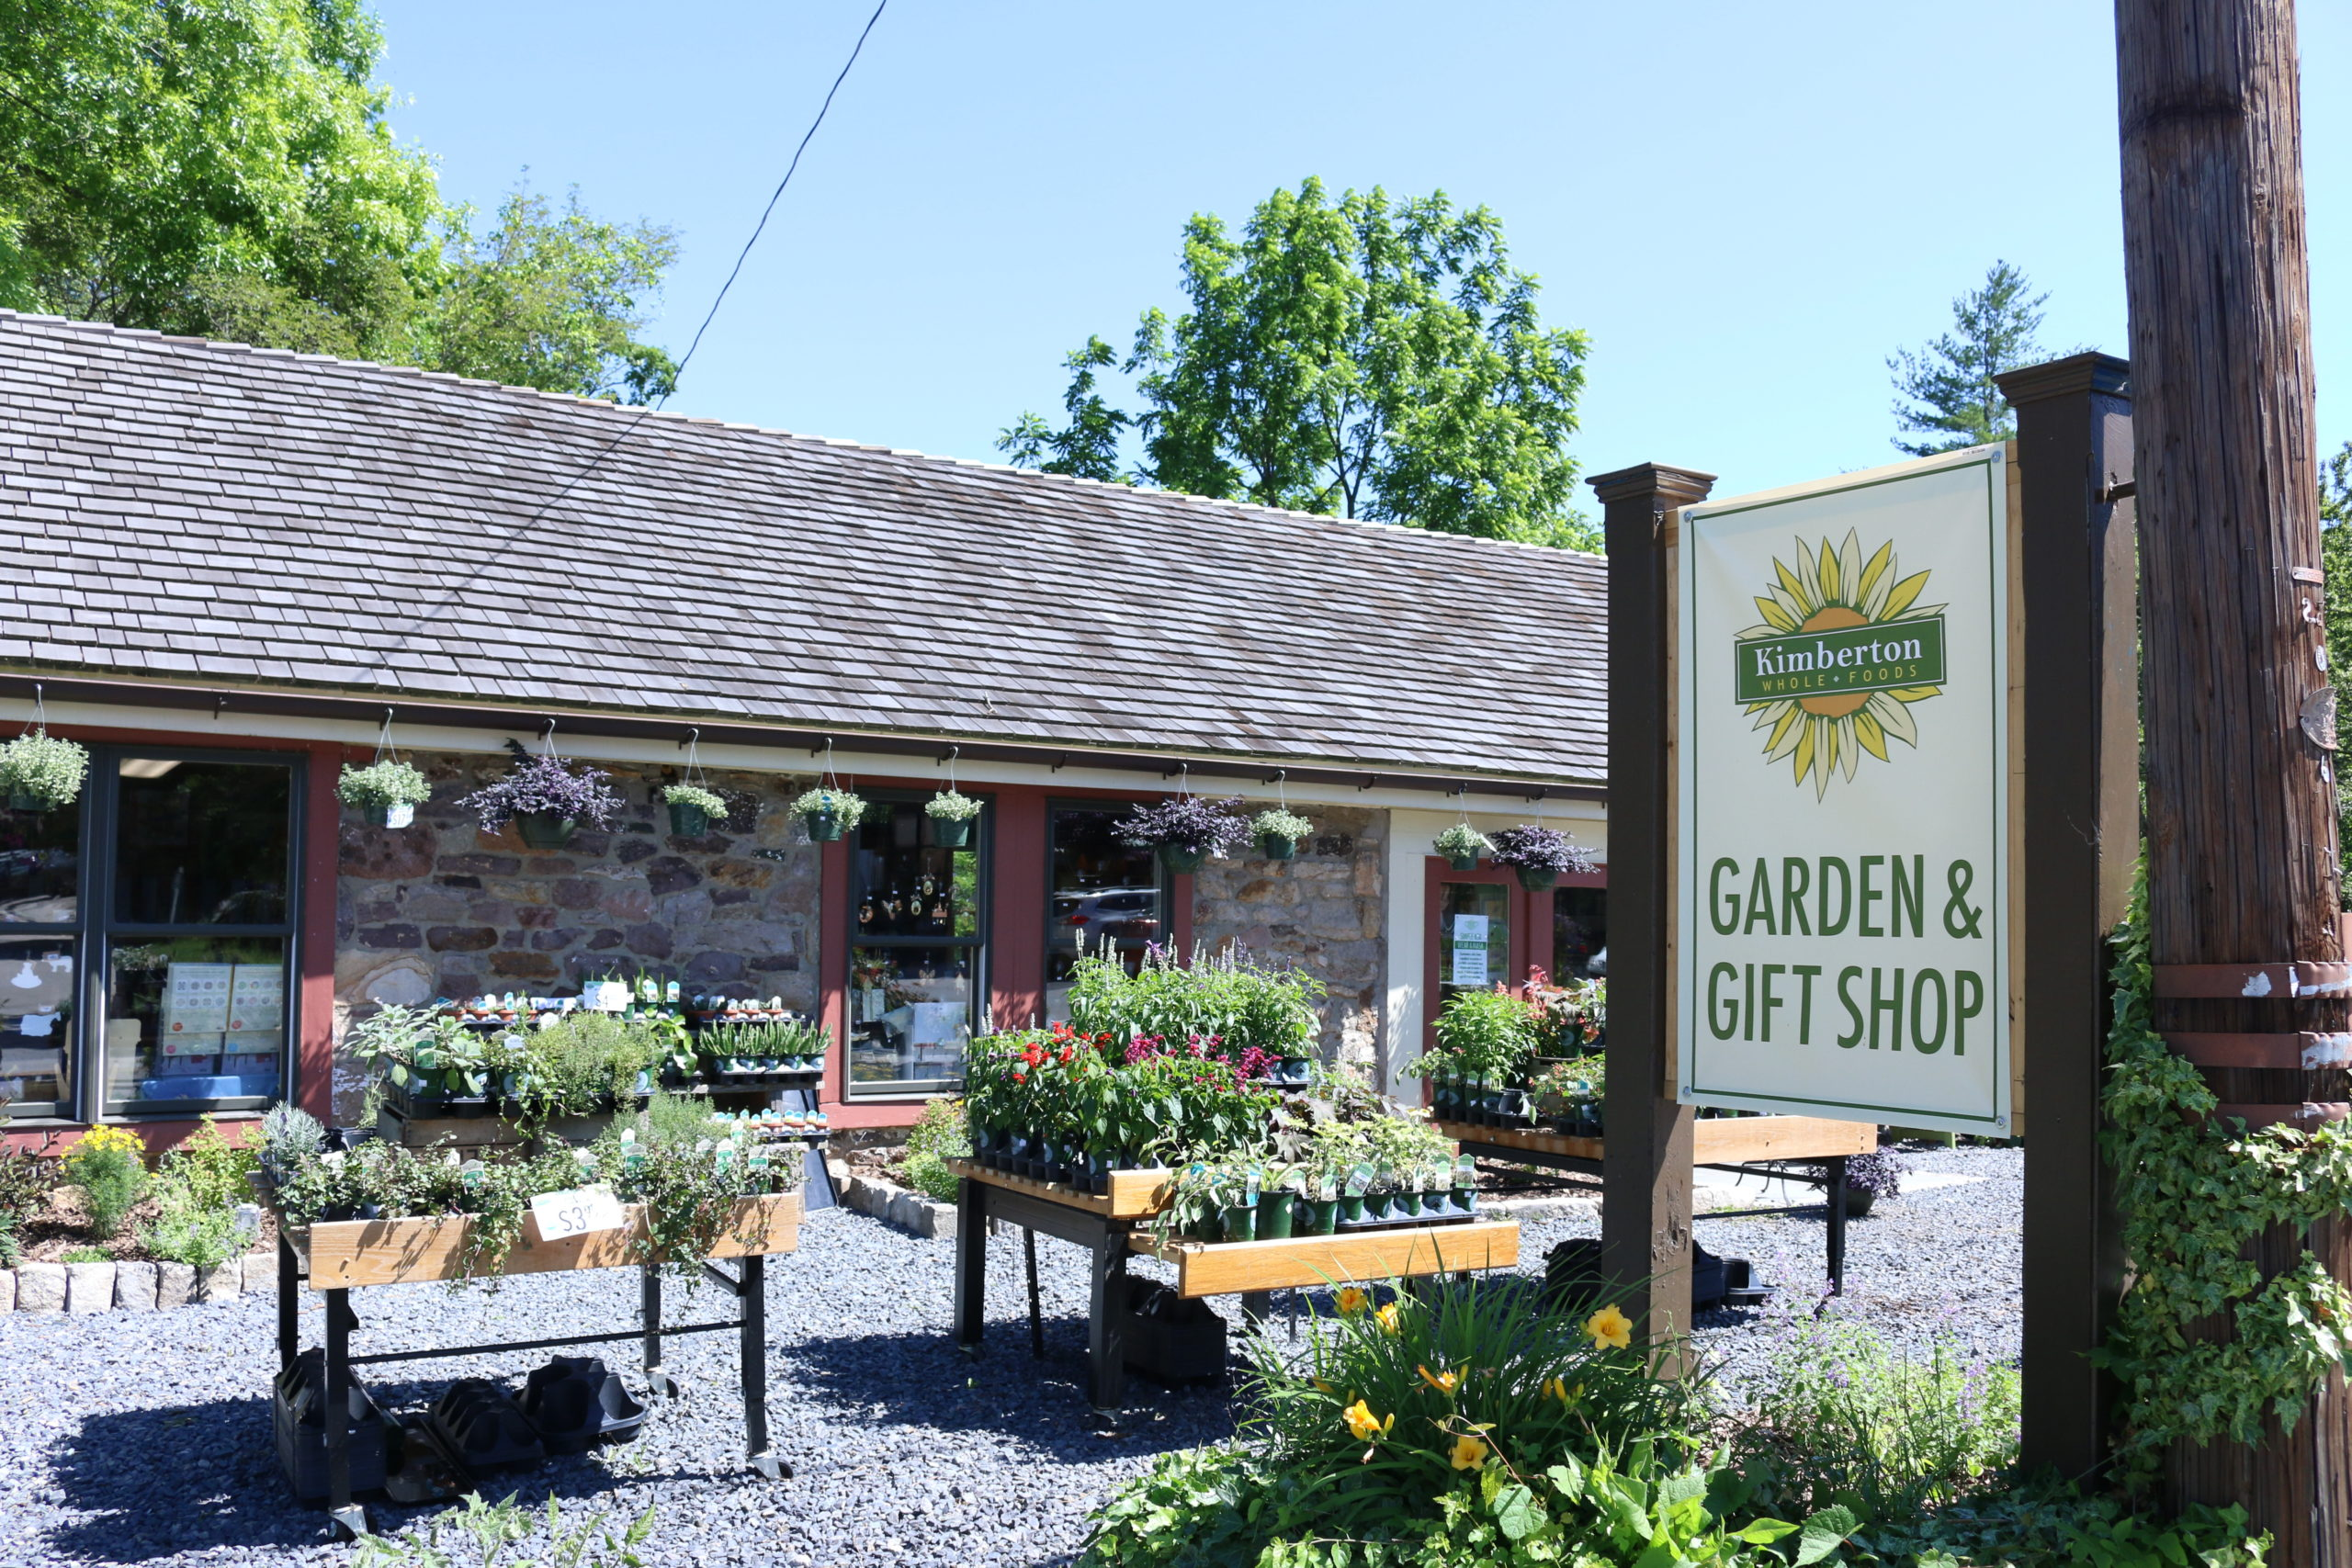 Kimberton Whole Foods Garden and Gift Shop